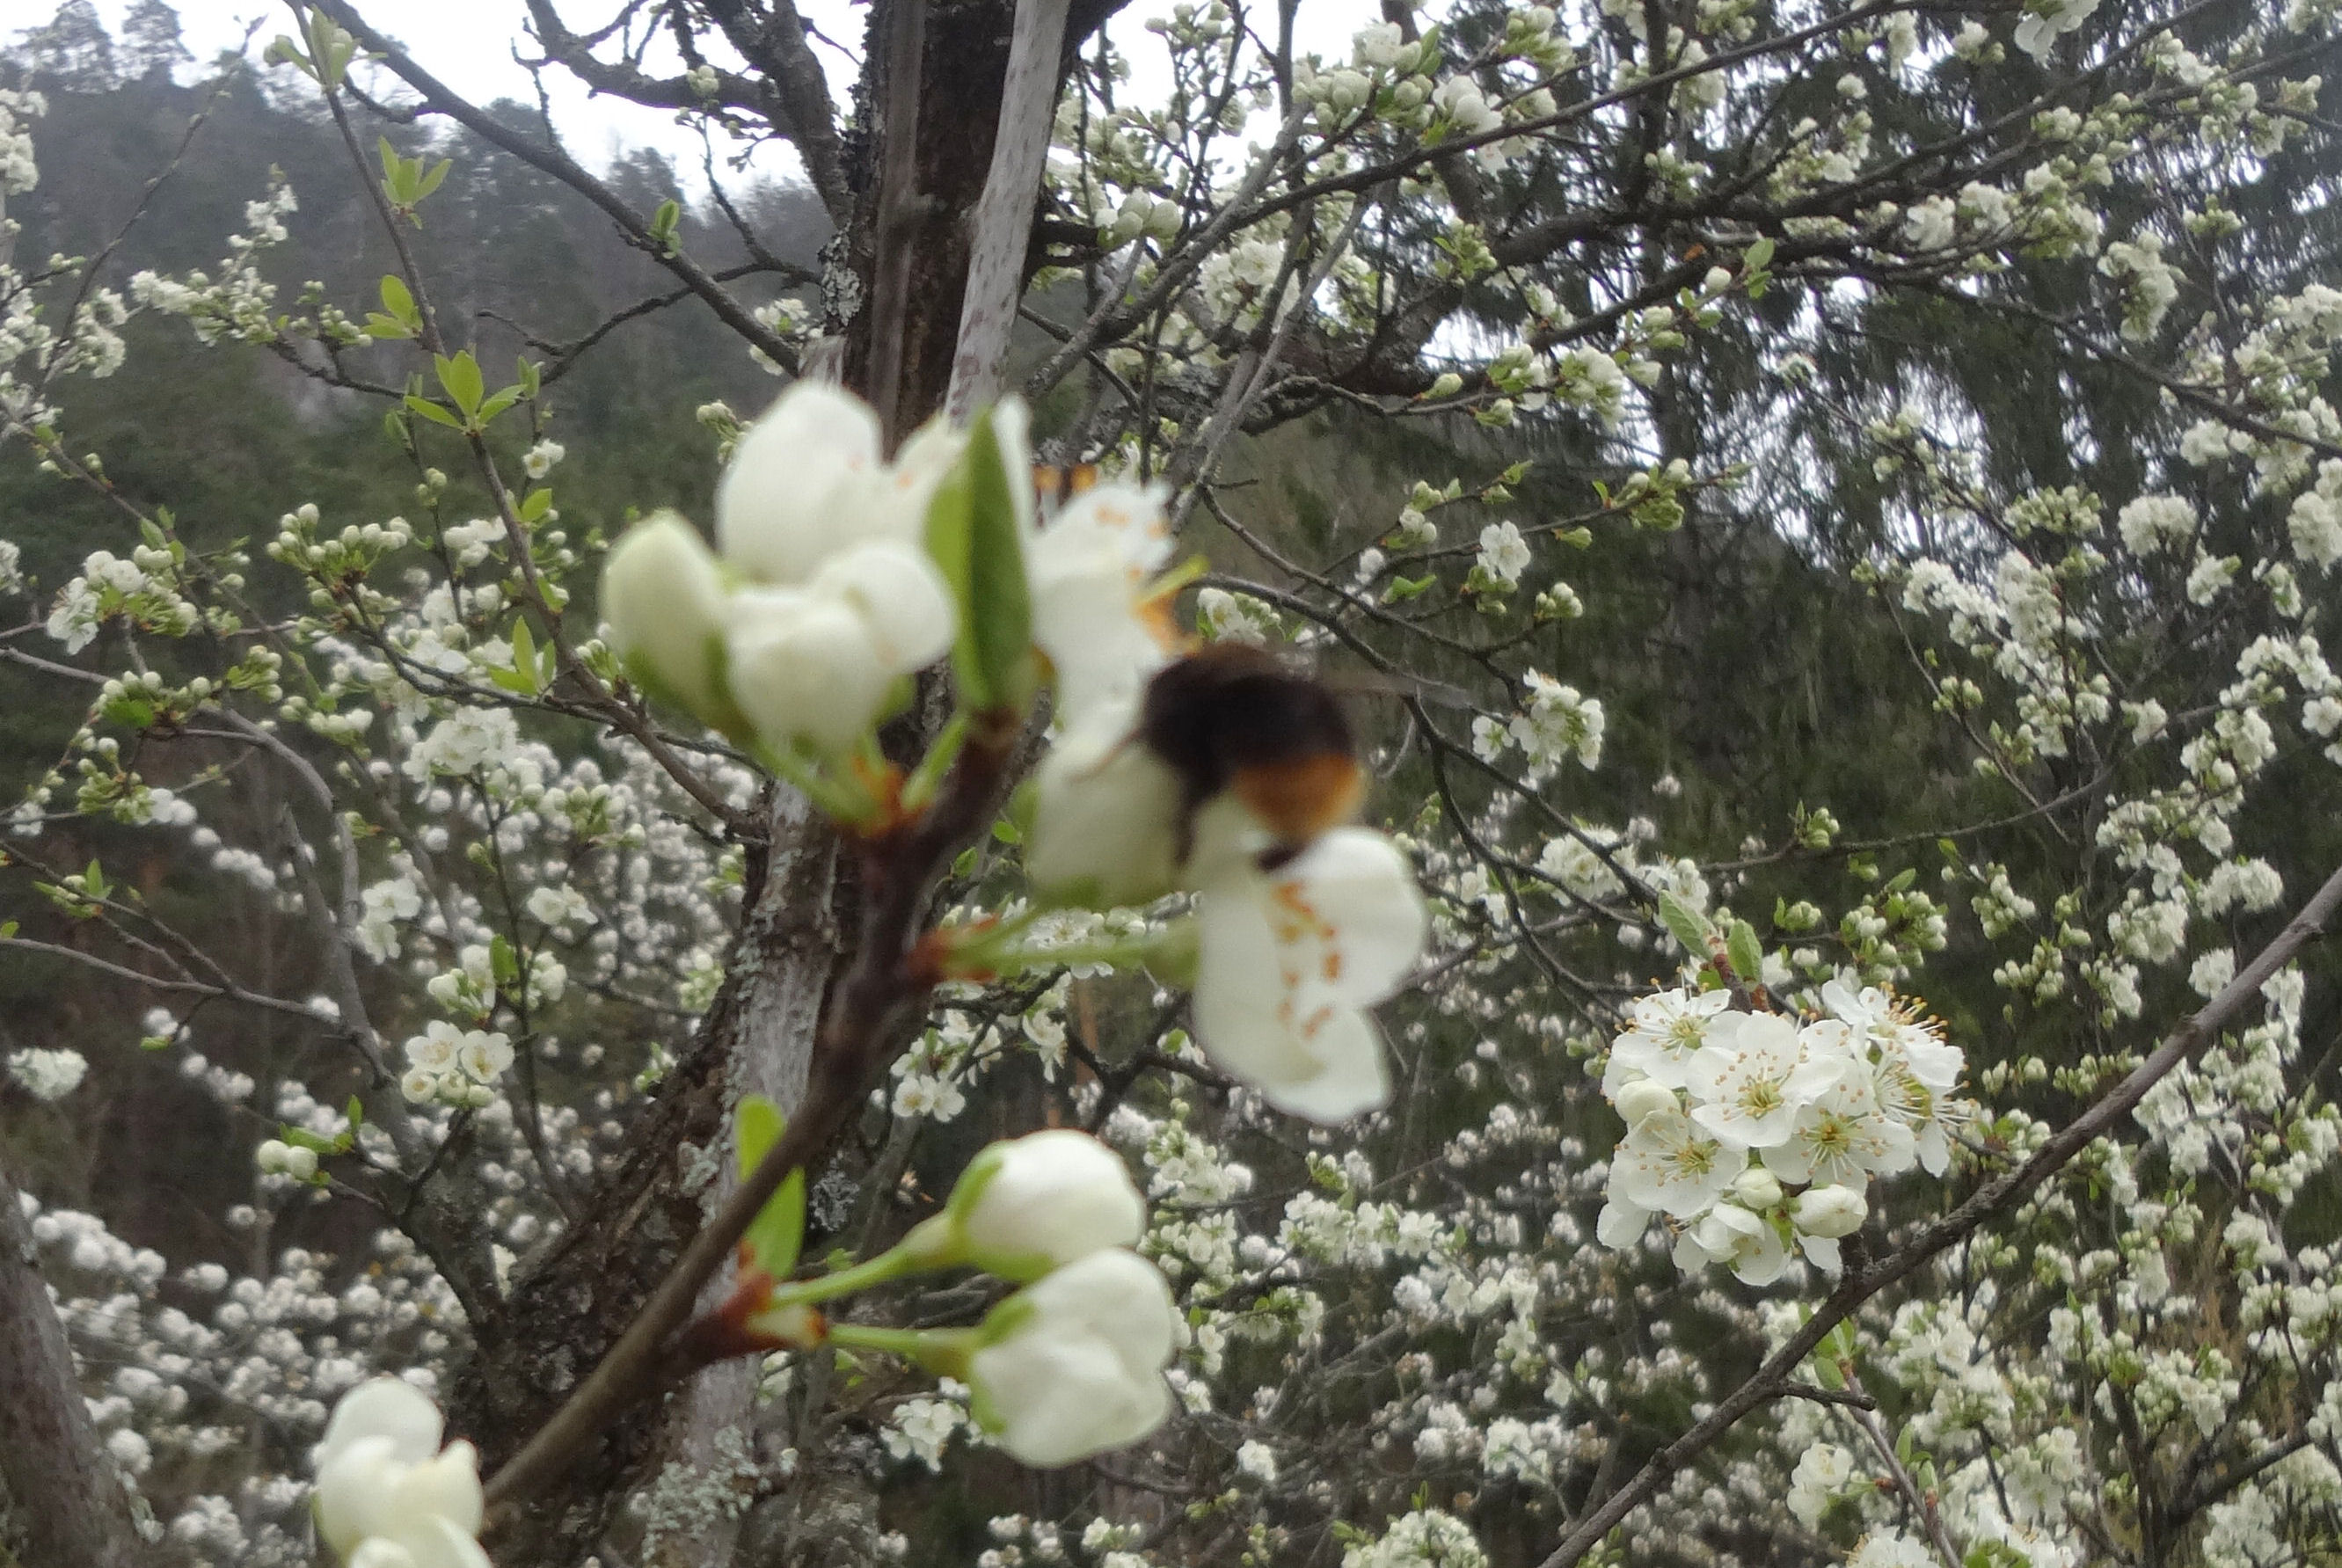 Bumblebee and cherry blossoms in a garden in front of the Fine Stay apartment